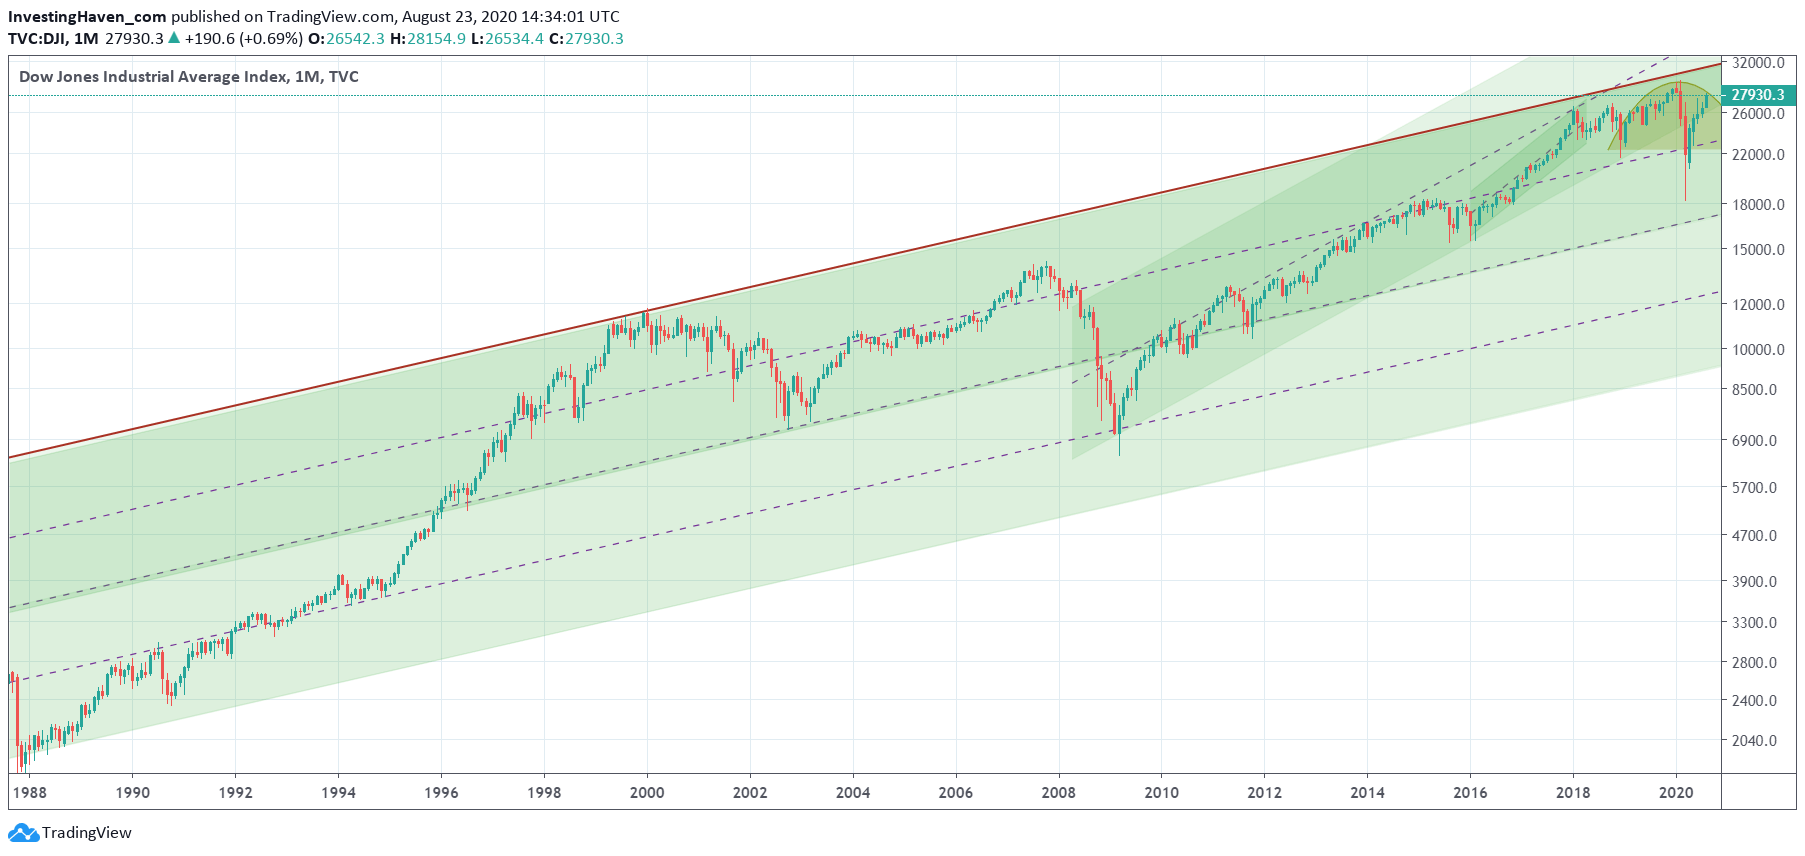 dow jones long term chart 2020